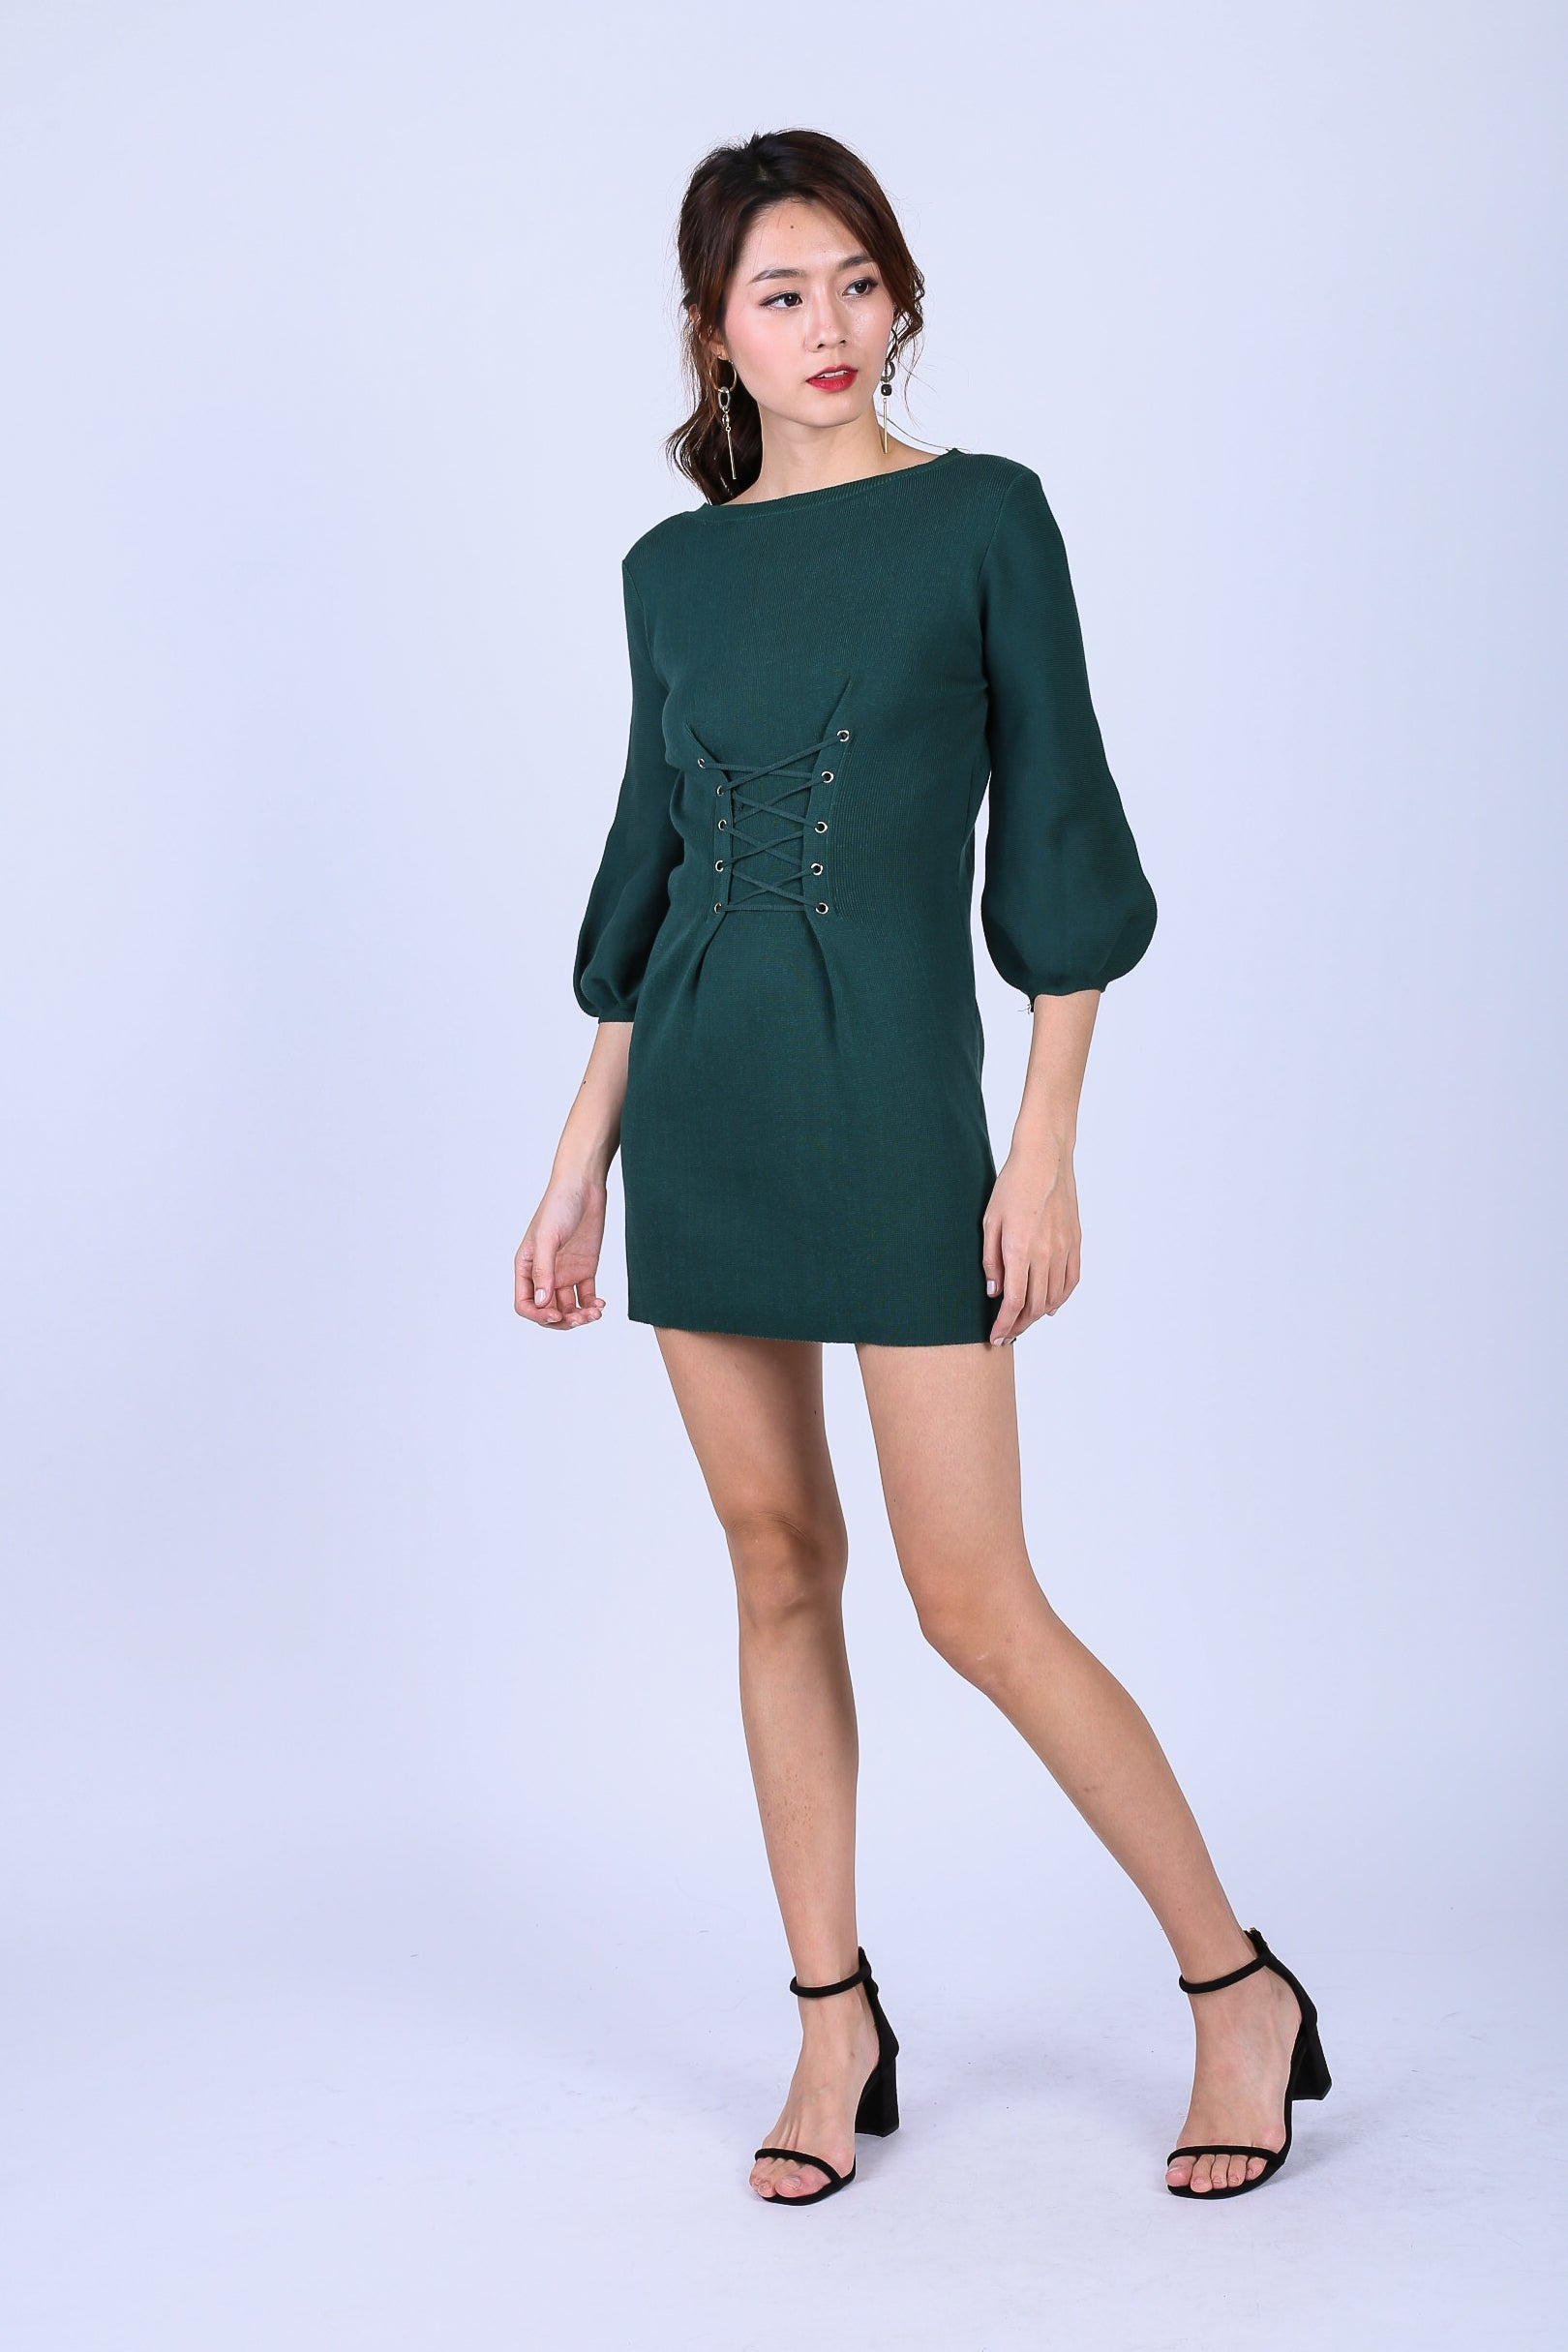 GWENYTH LACED KNIT DRESS IN FOREST